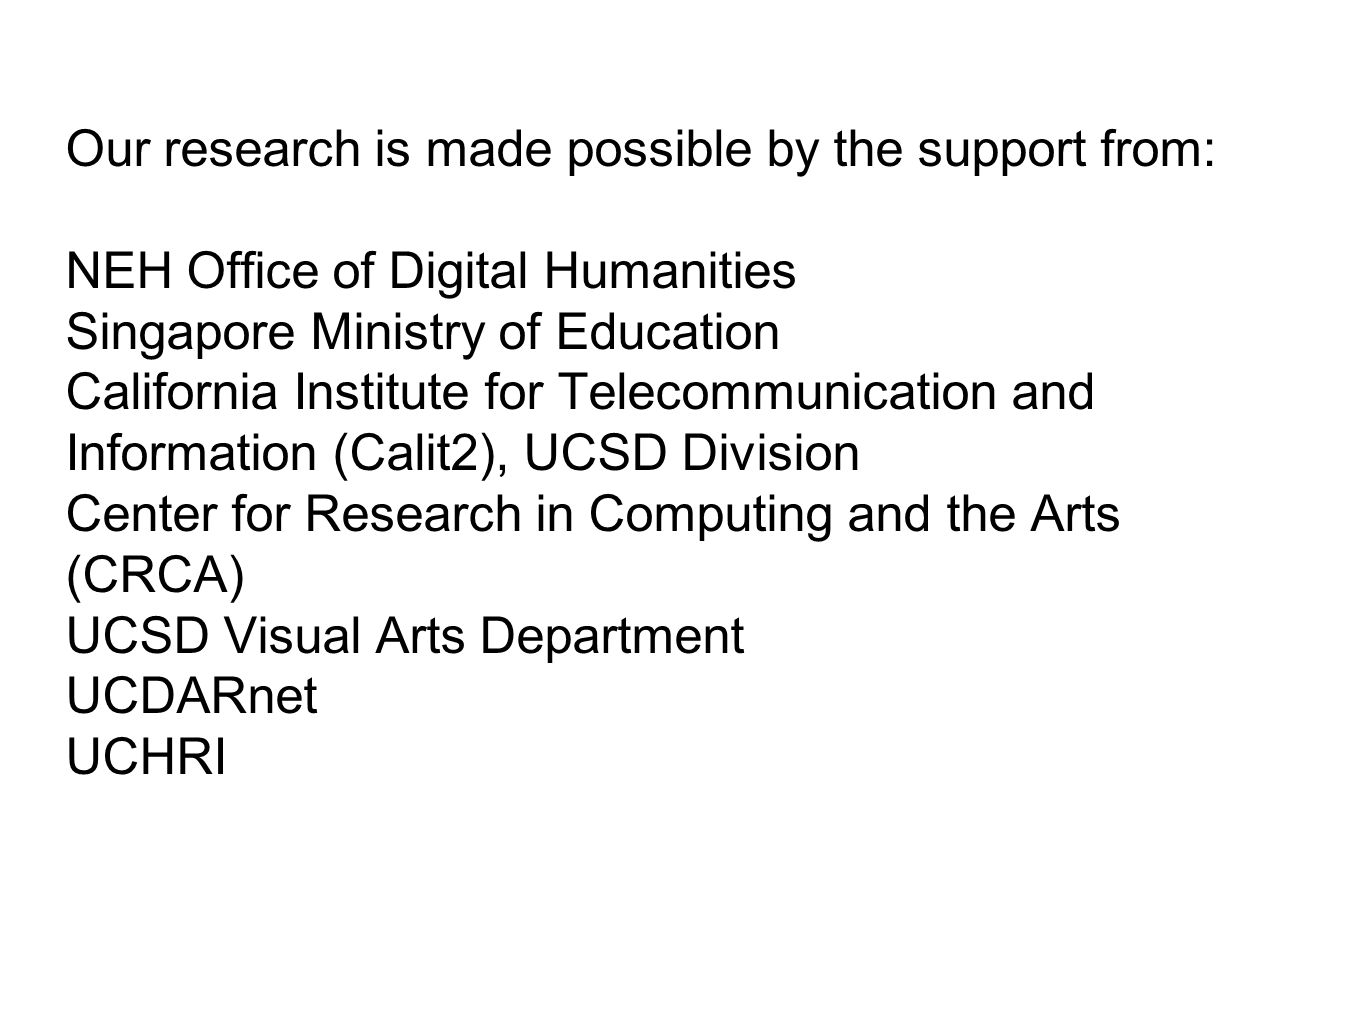 Our research is made possible by the support from: NEH Office of Digital Humanities Singapore Ministry of Education California Institute for Telecommunication and Information (Calit2), UCSD Division Center for Research in Computing and the Arts (CRCA) UCSD Visual Arts Department UCDARnet UCHRI